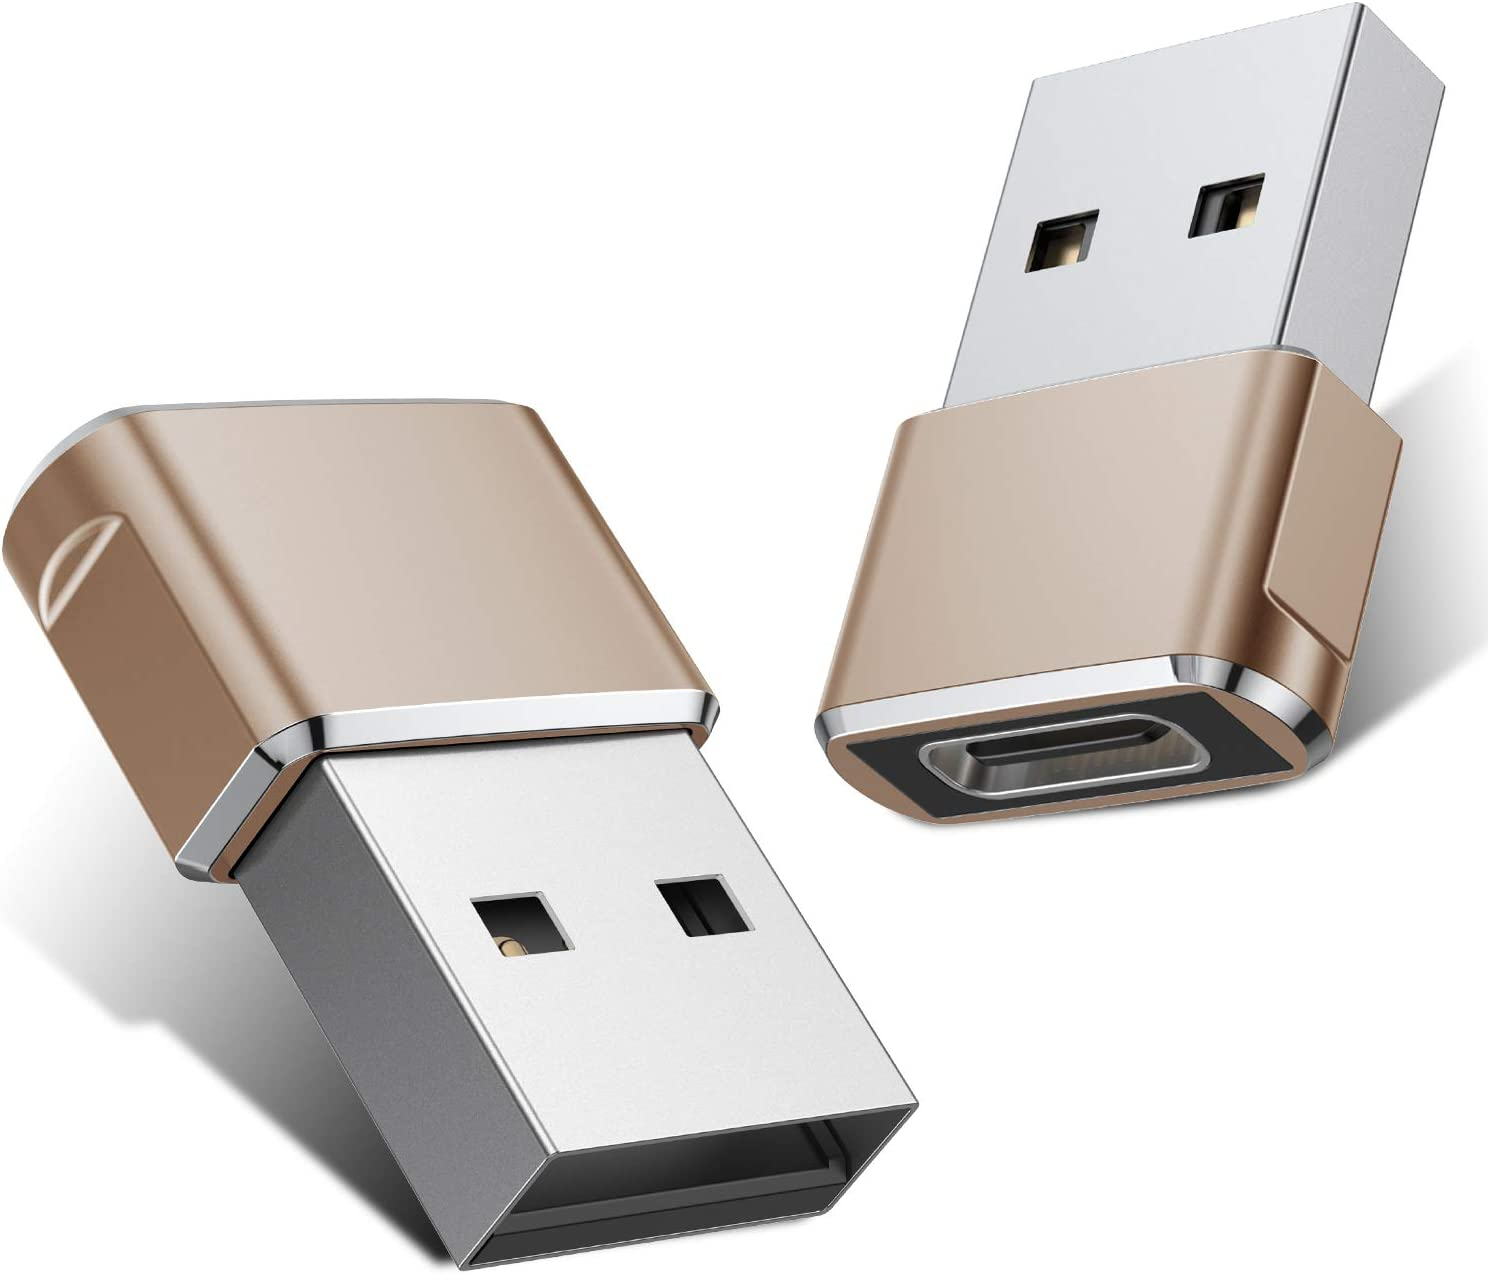 Basesailor 2 Pack USB C Female to USB Male Adapter $7.21